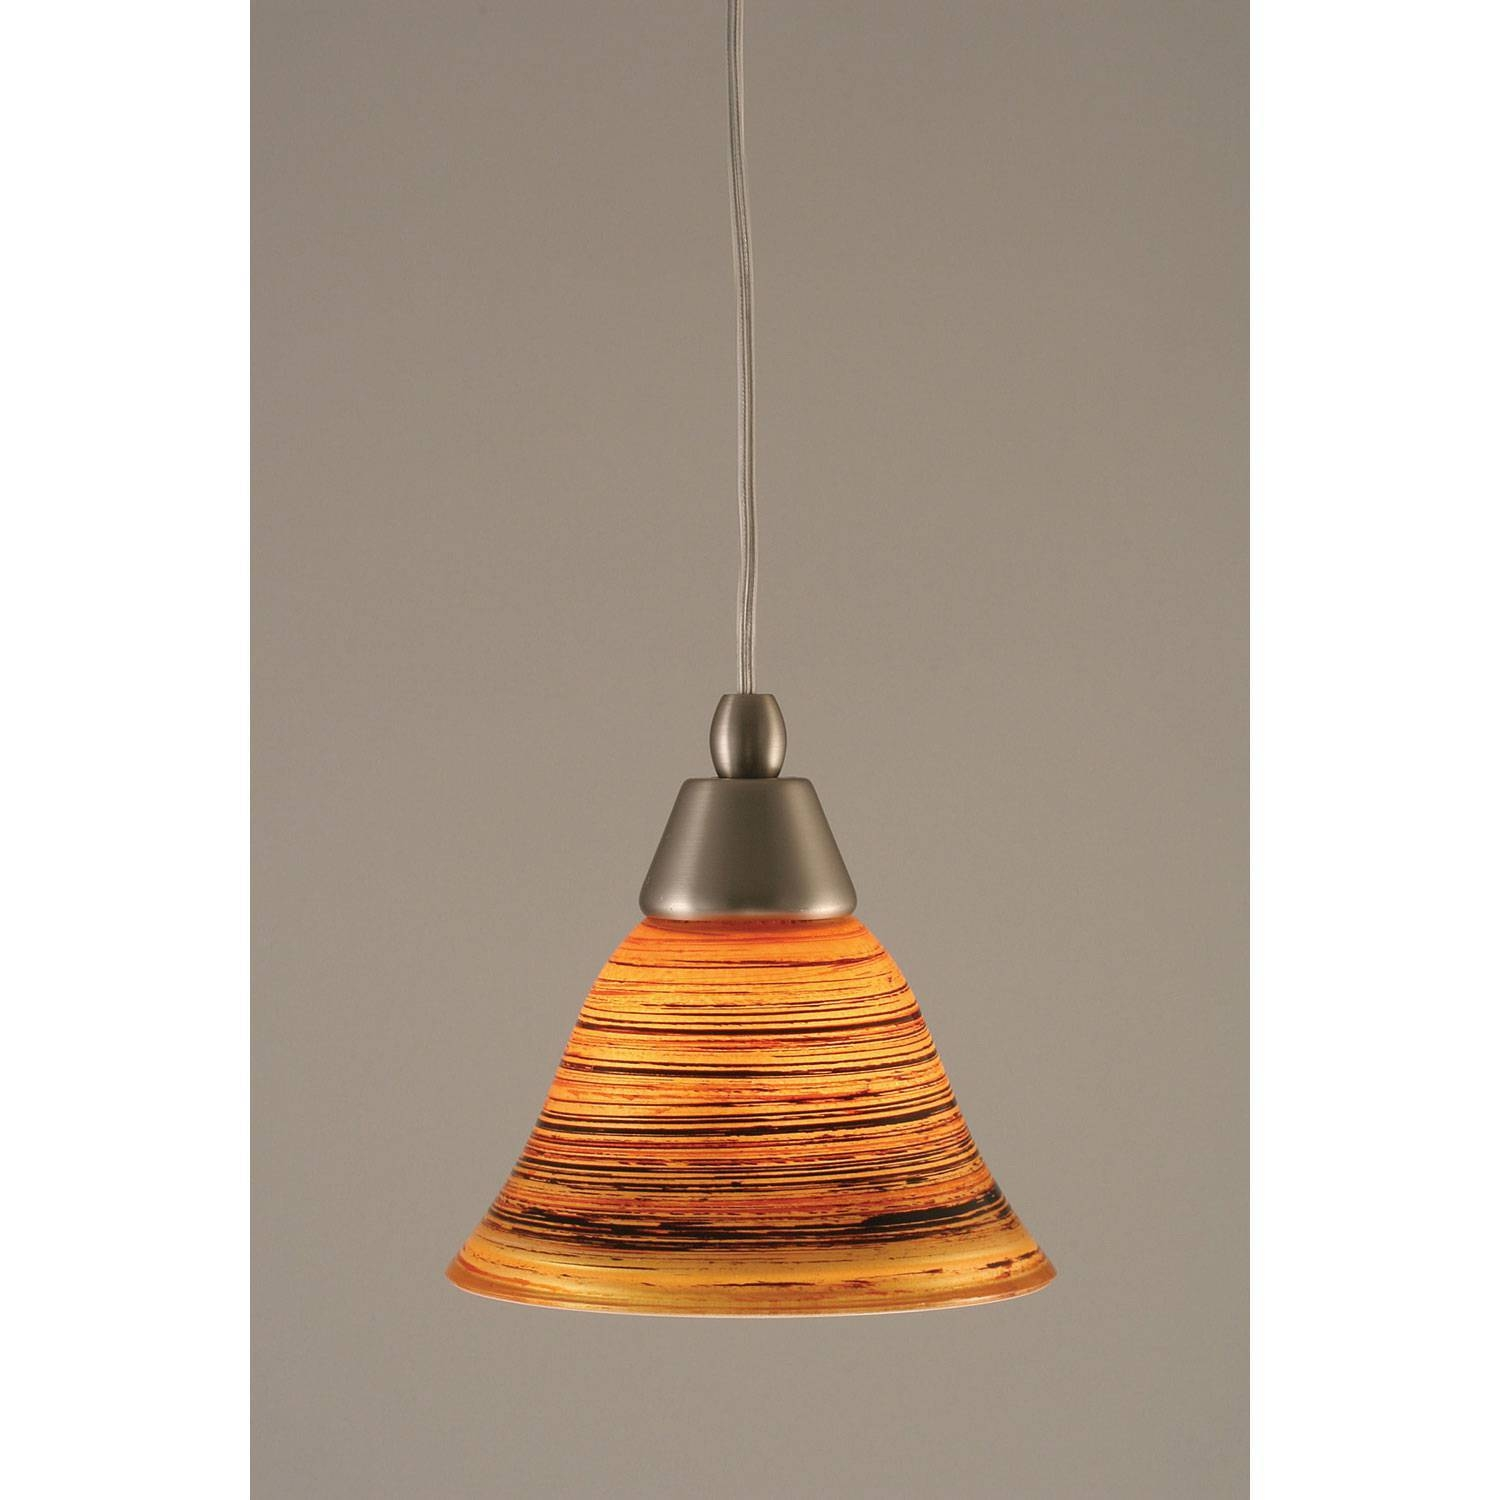 Kitchen Lighting: No Pendant Lights Over Island Butcher Block intended for Pier One Pendant Lights (Image 13 of 15)